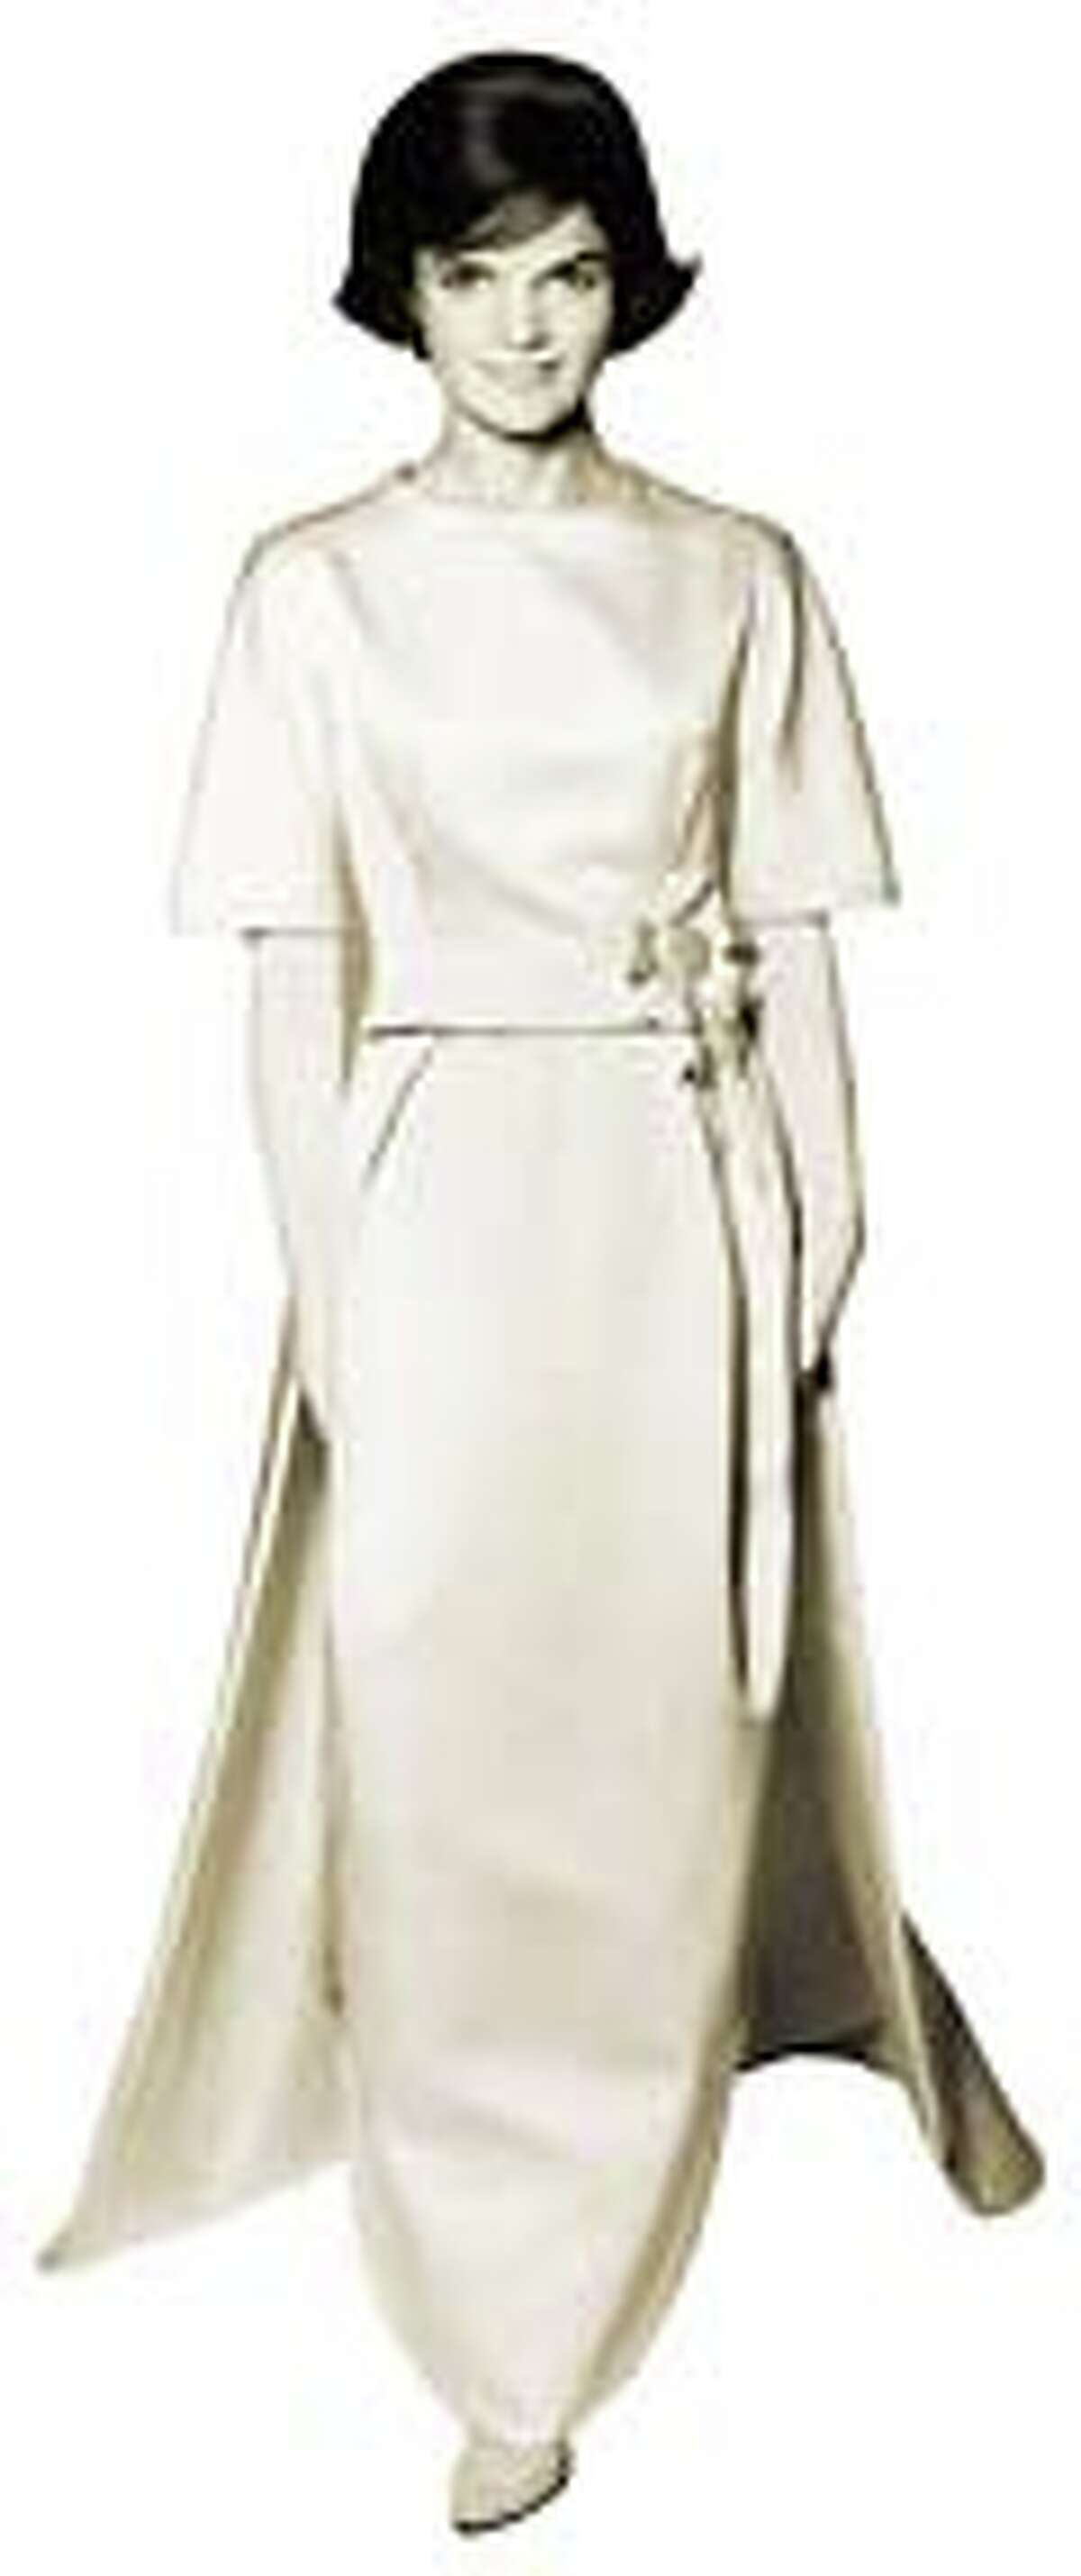 Oleg Cassini designed this gown of ivory double-faced silk satin twill for Jackie Kennedy to wear to the inaugural gala in 1961. It projected an image of Jackie as a woman of commanding personal style.